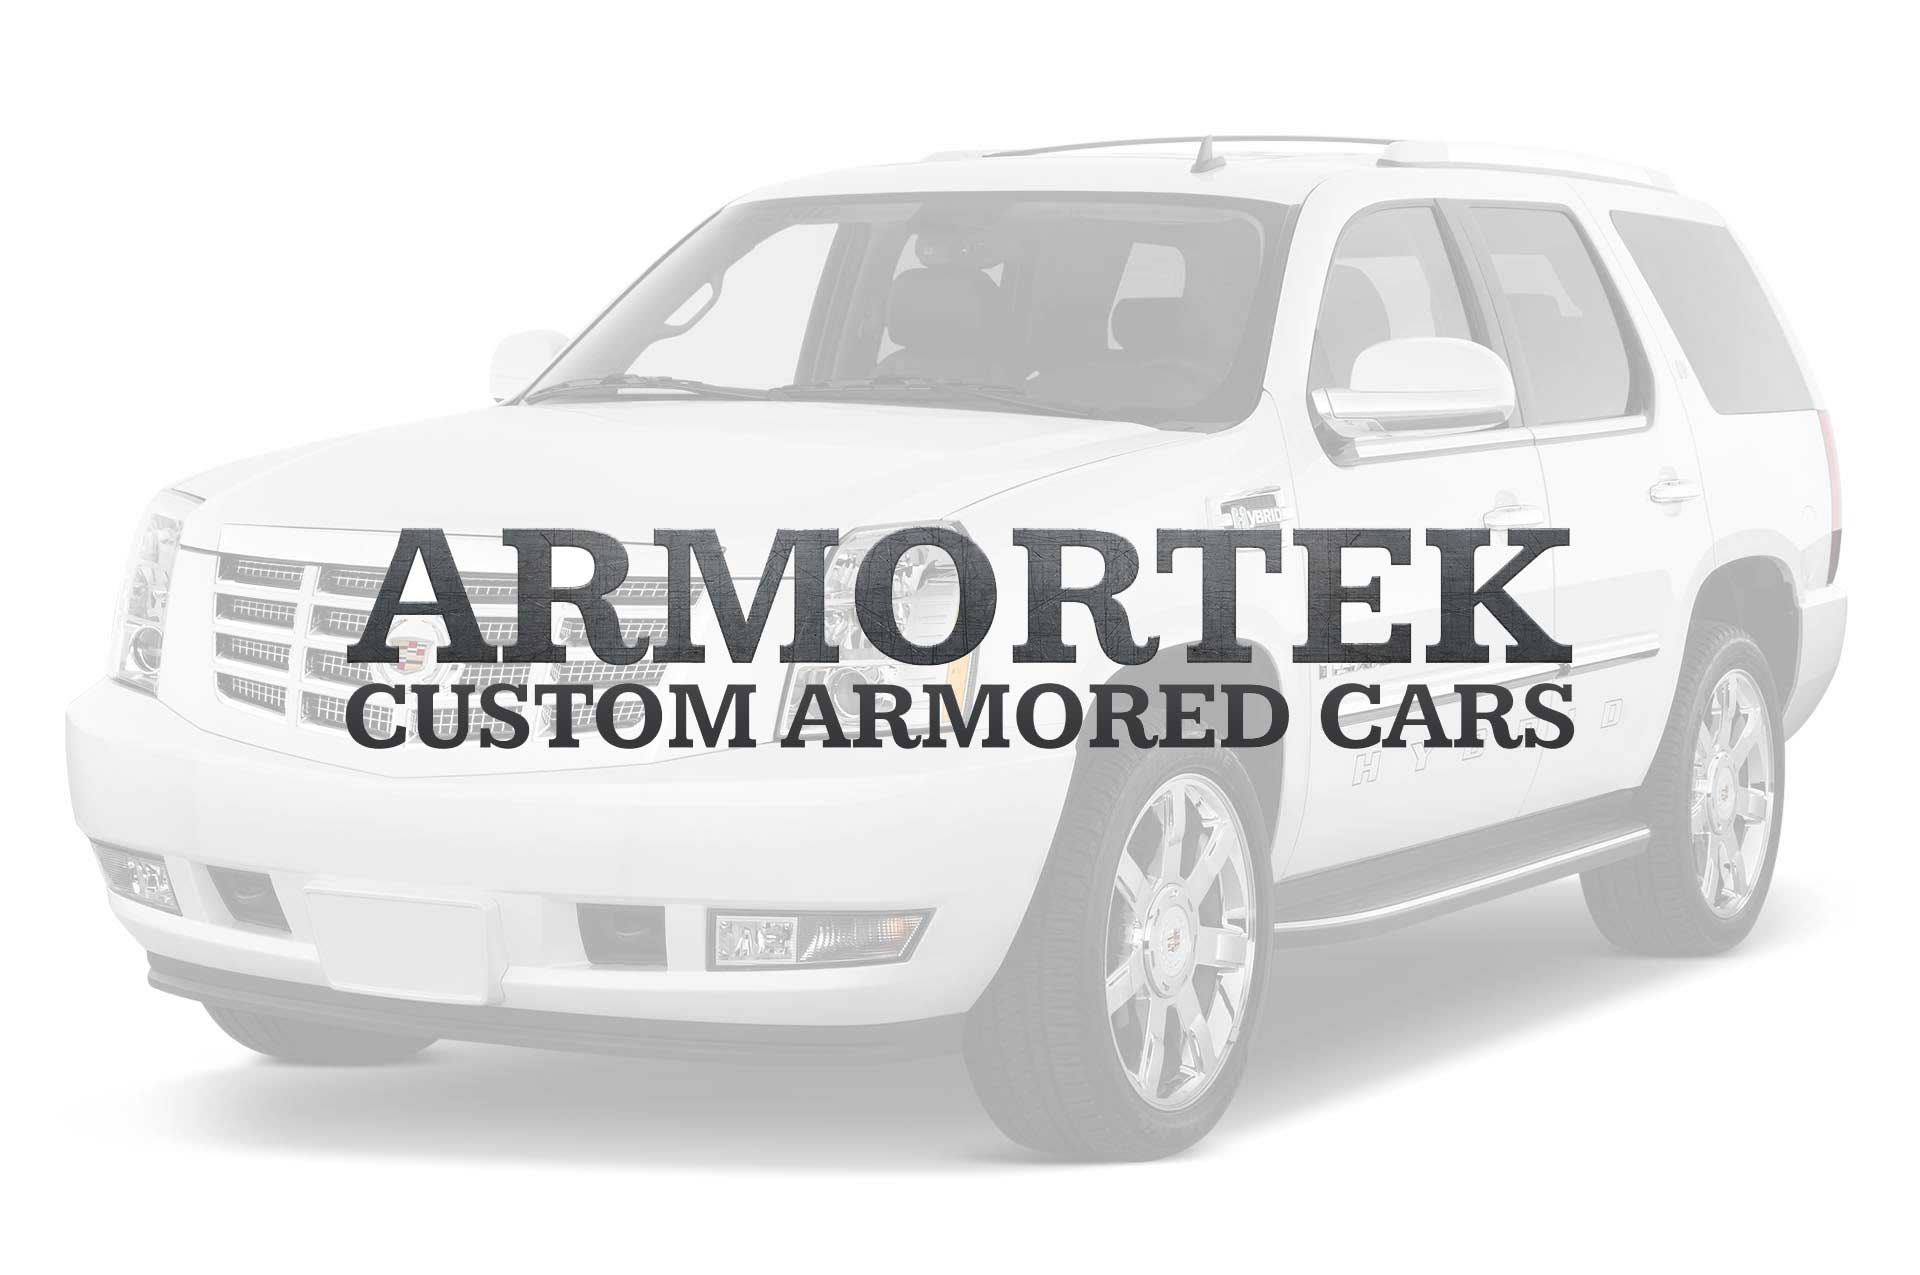 Armortek International Custom Armored Car Logo Over White SUV Slide